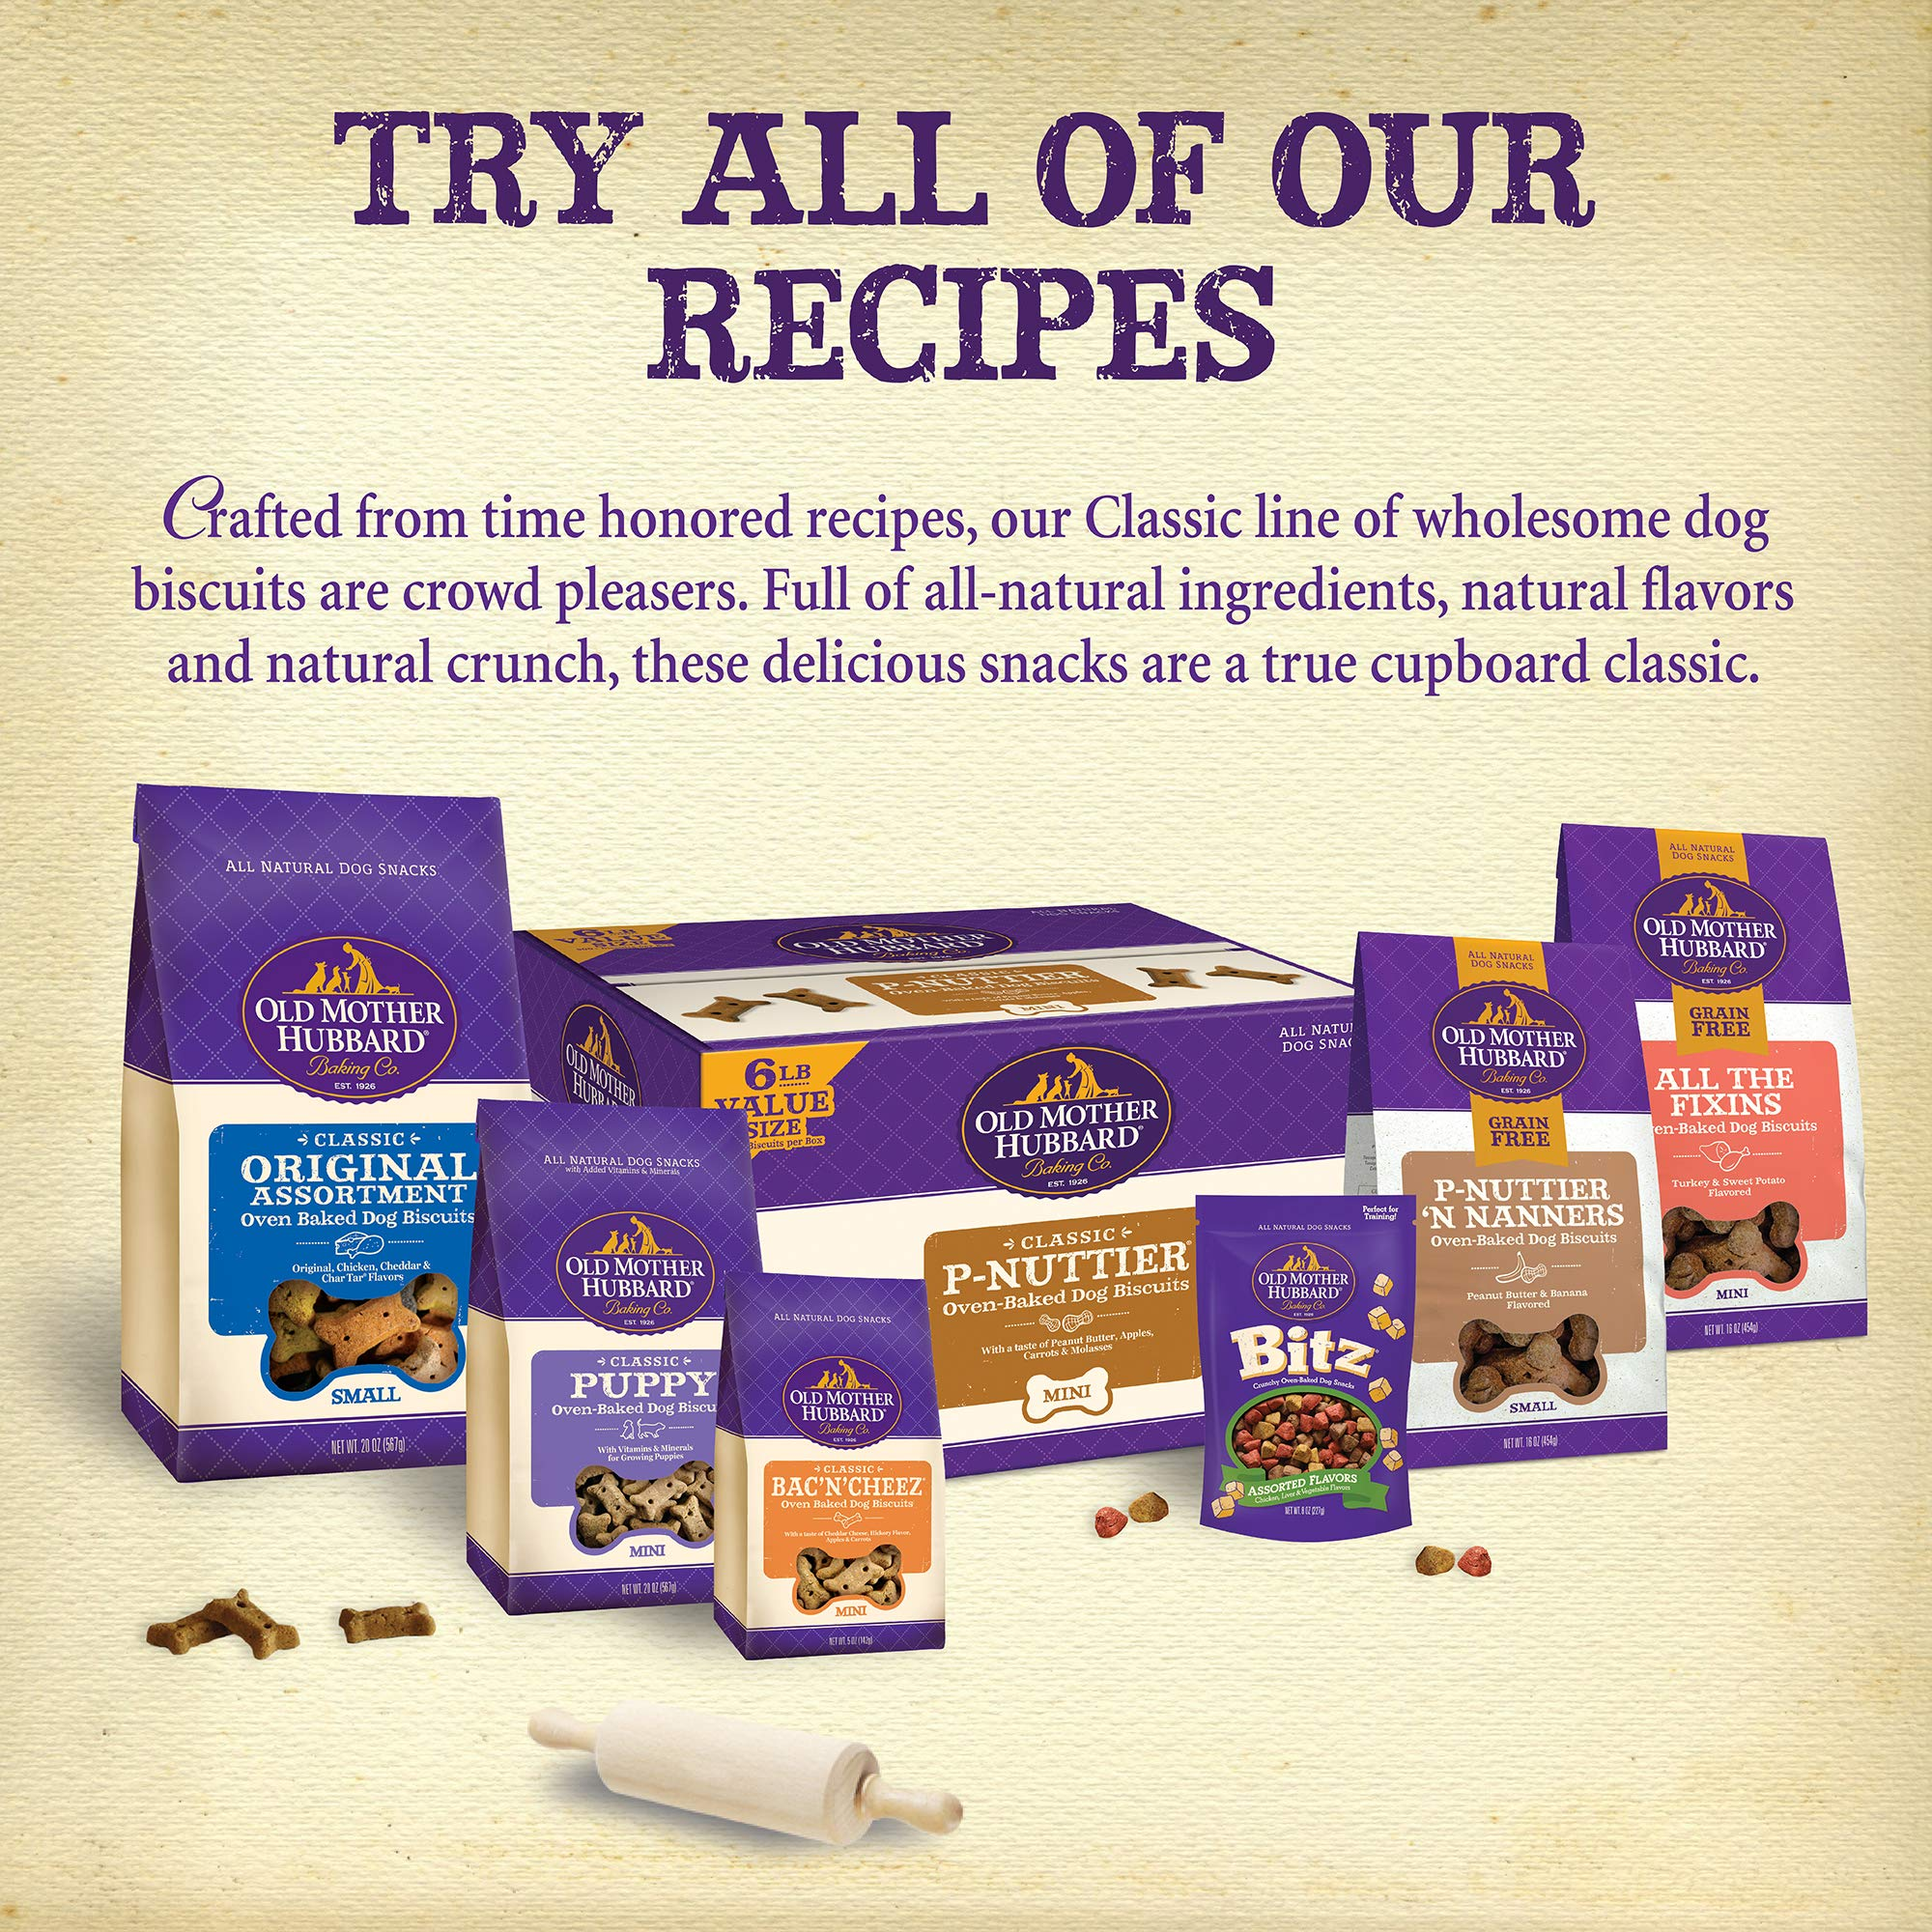 Old Mother Hubbard Classic Crunchy Natural Puppy Treats, Mini Dog Biscuits, 5-Ounce Bag by Old Mother Hubbard (Image #7)